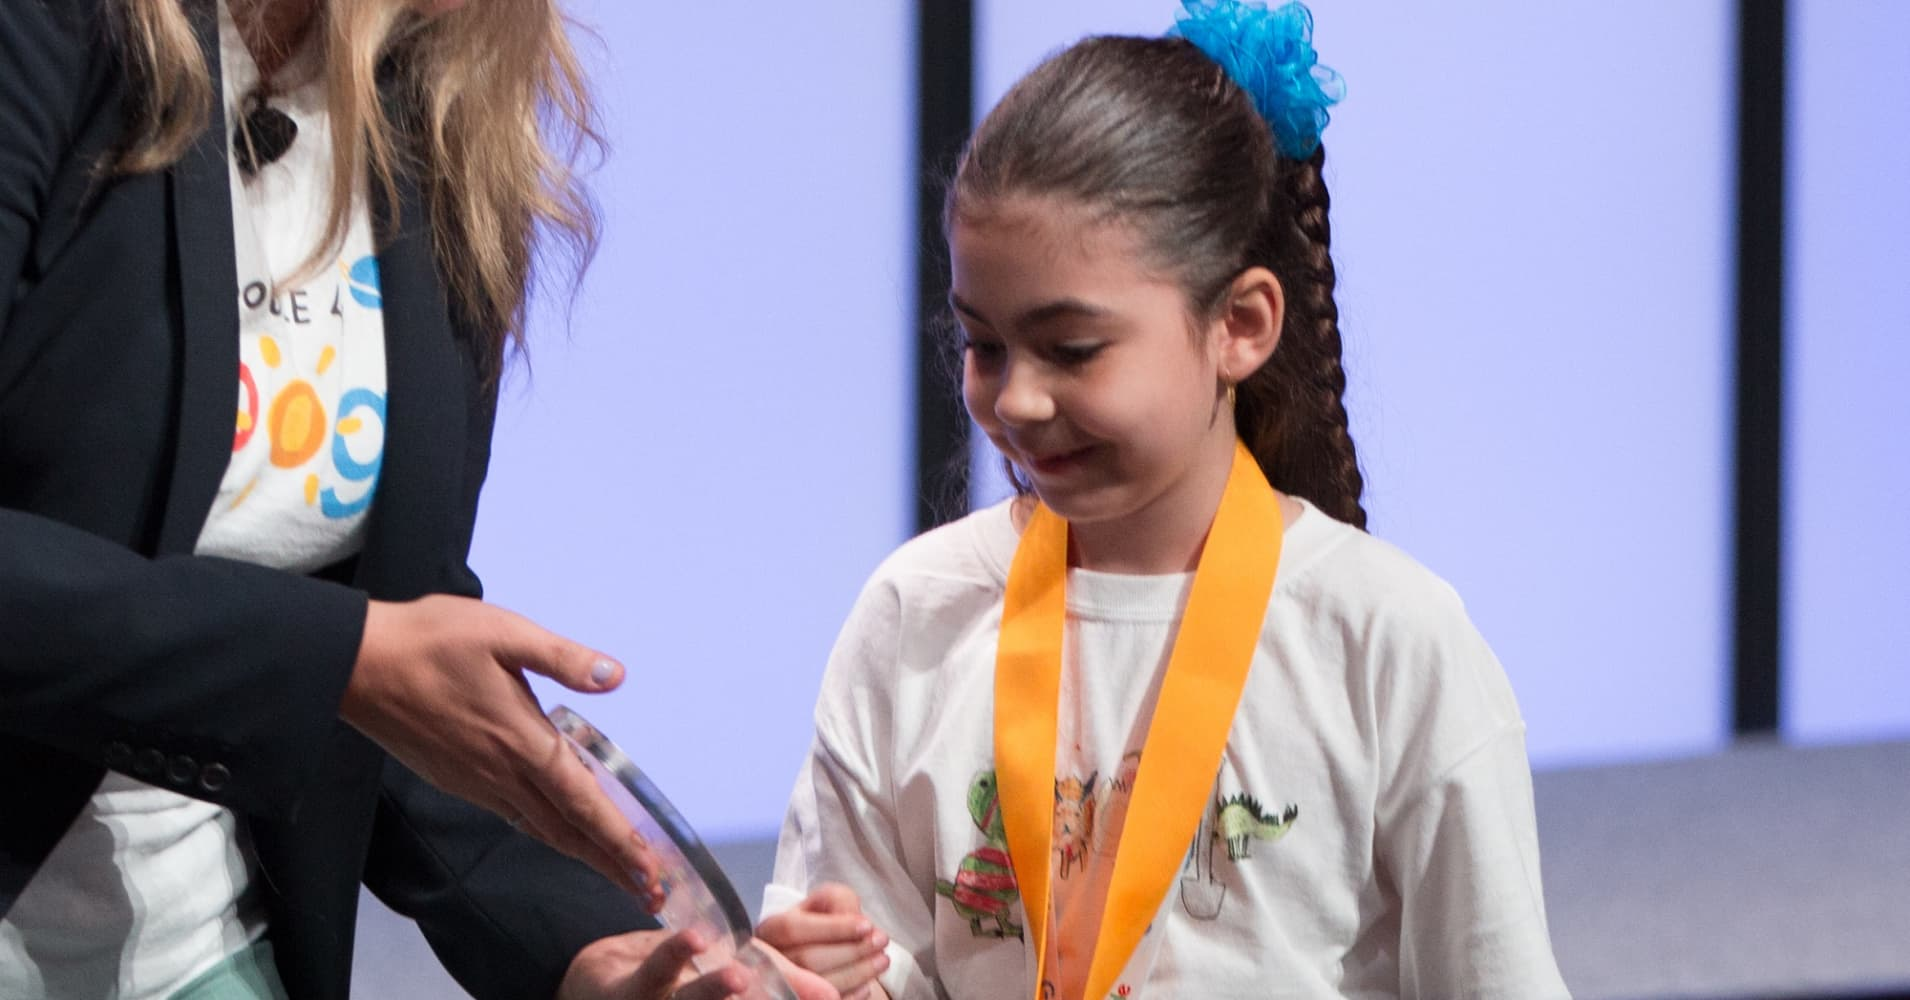 Sarah Gomez-Lane, 7, was announced the 2018 national winner of the Doodle 4 Google contest on June 18, 2018.